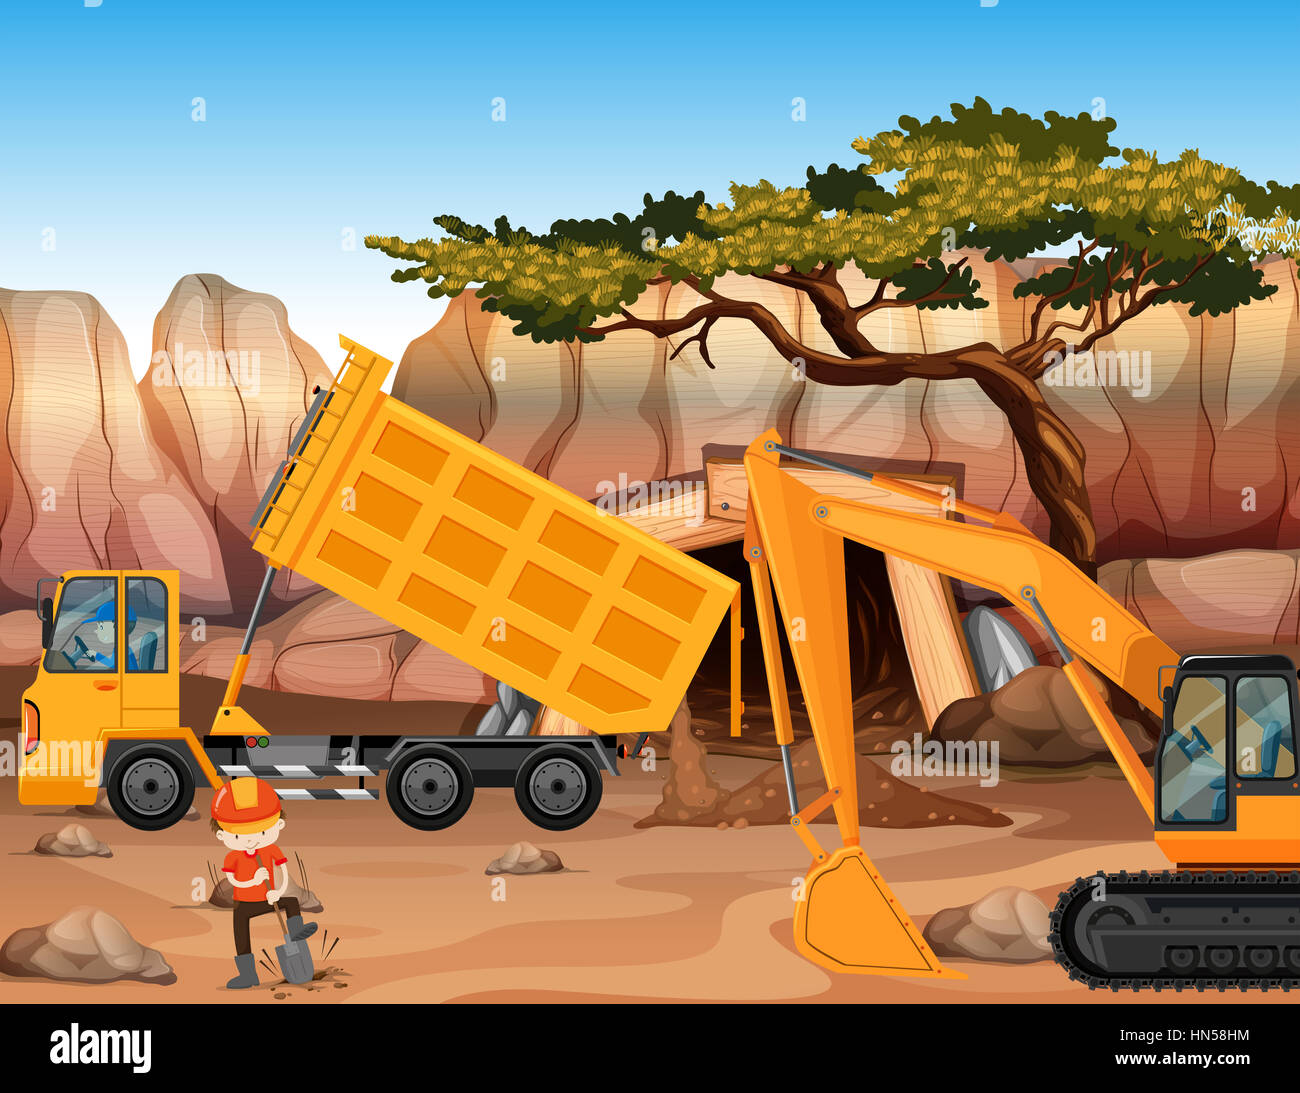 Bulldozer and dumping truck at the field illustration - Stock Image